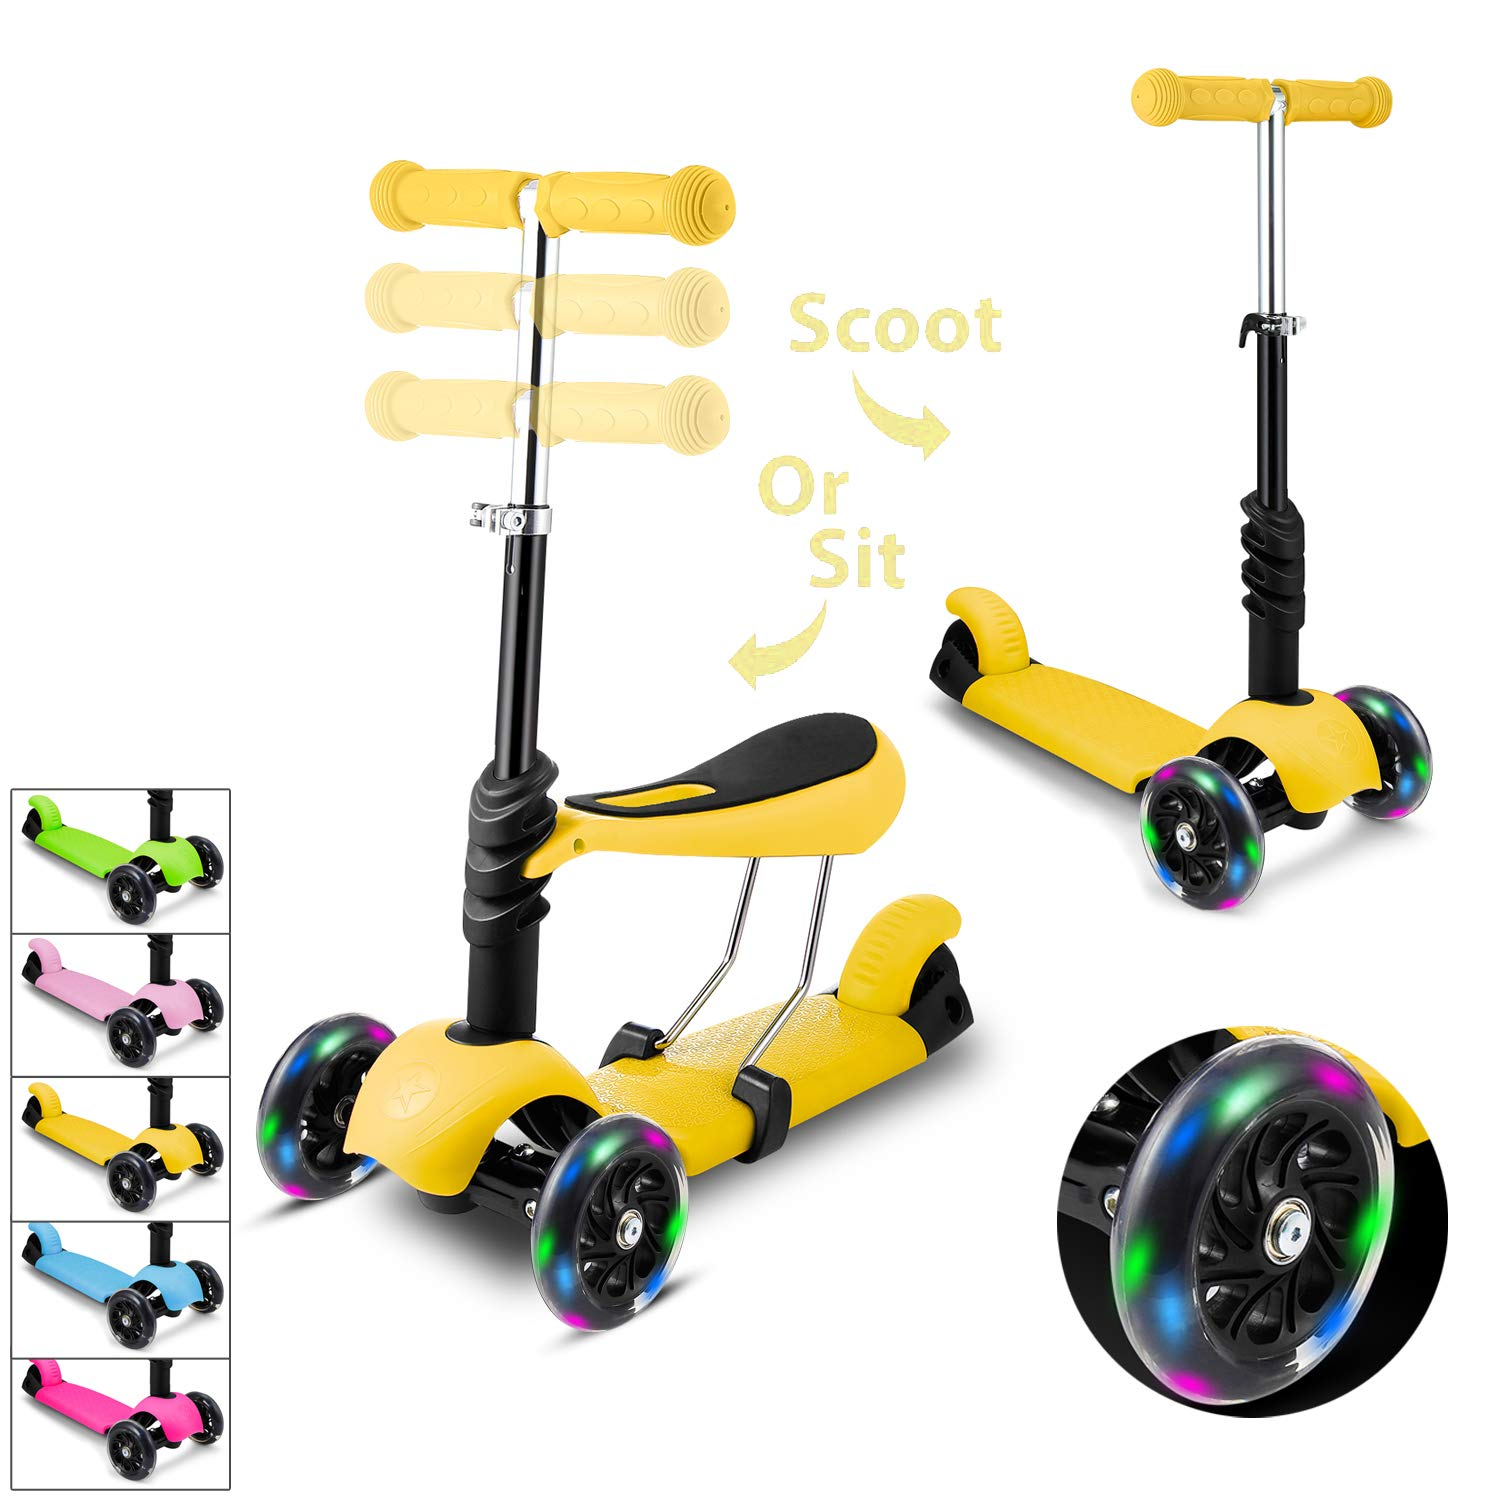 WeSkate Kids Scooters with Seat 3 Wheel Kick Scooter Adjustable Height Removable Adjustable Seat, T-Handlebar and LED Light Up Wheel for Children Boys Girls 2-8Years Old by WeSkate